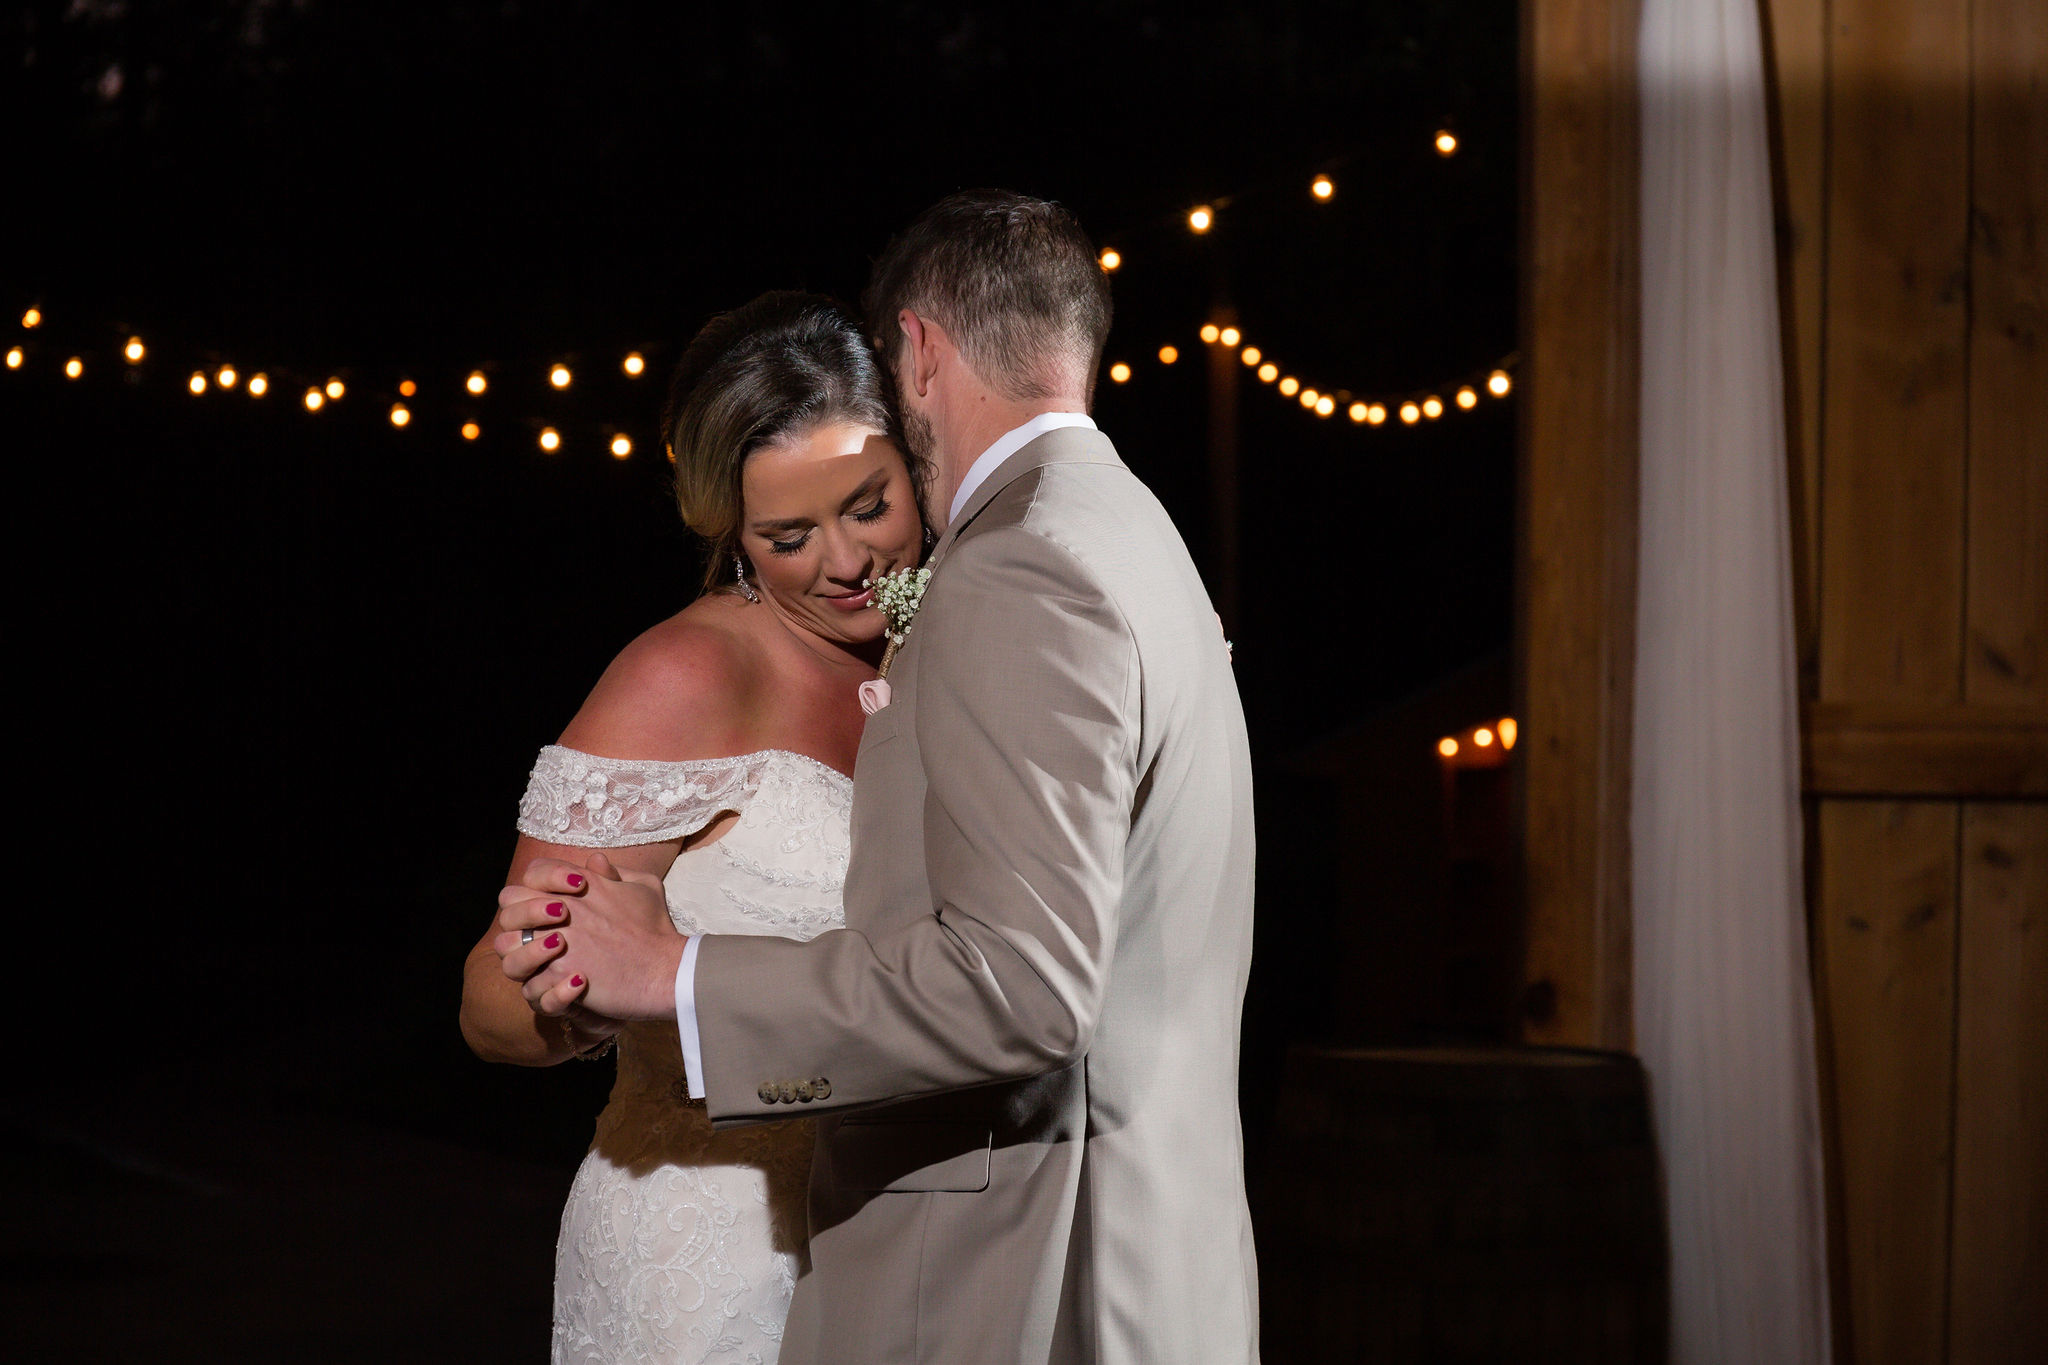 A sweet moment captured during their first dance.